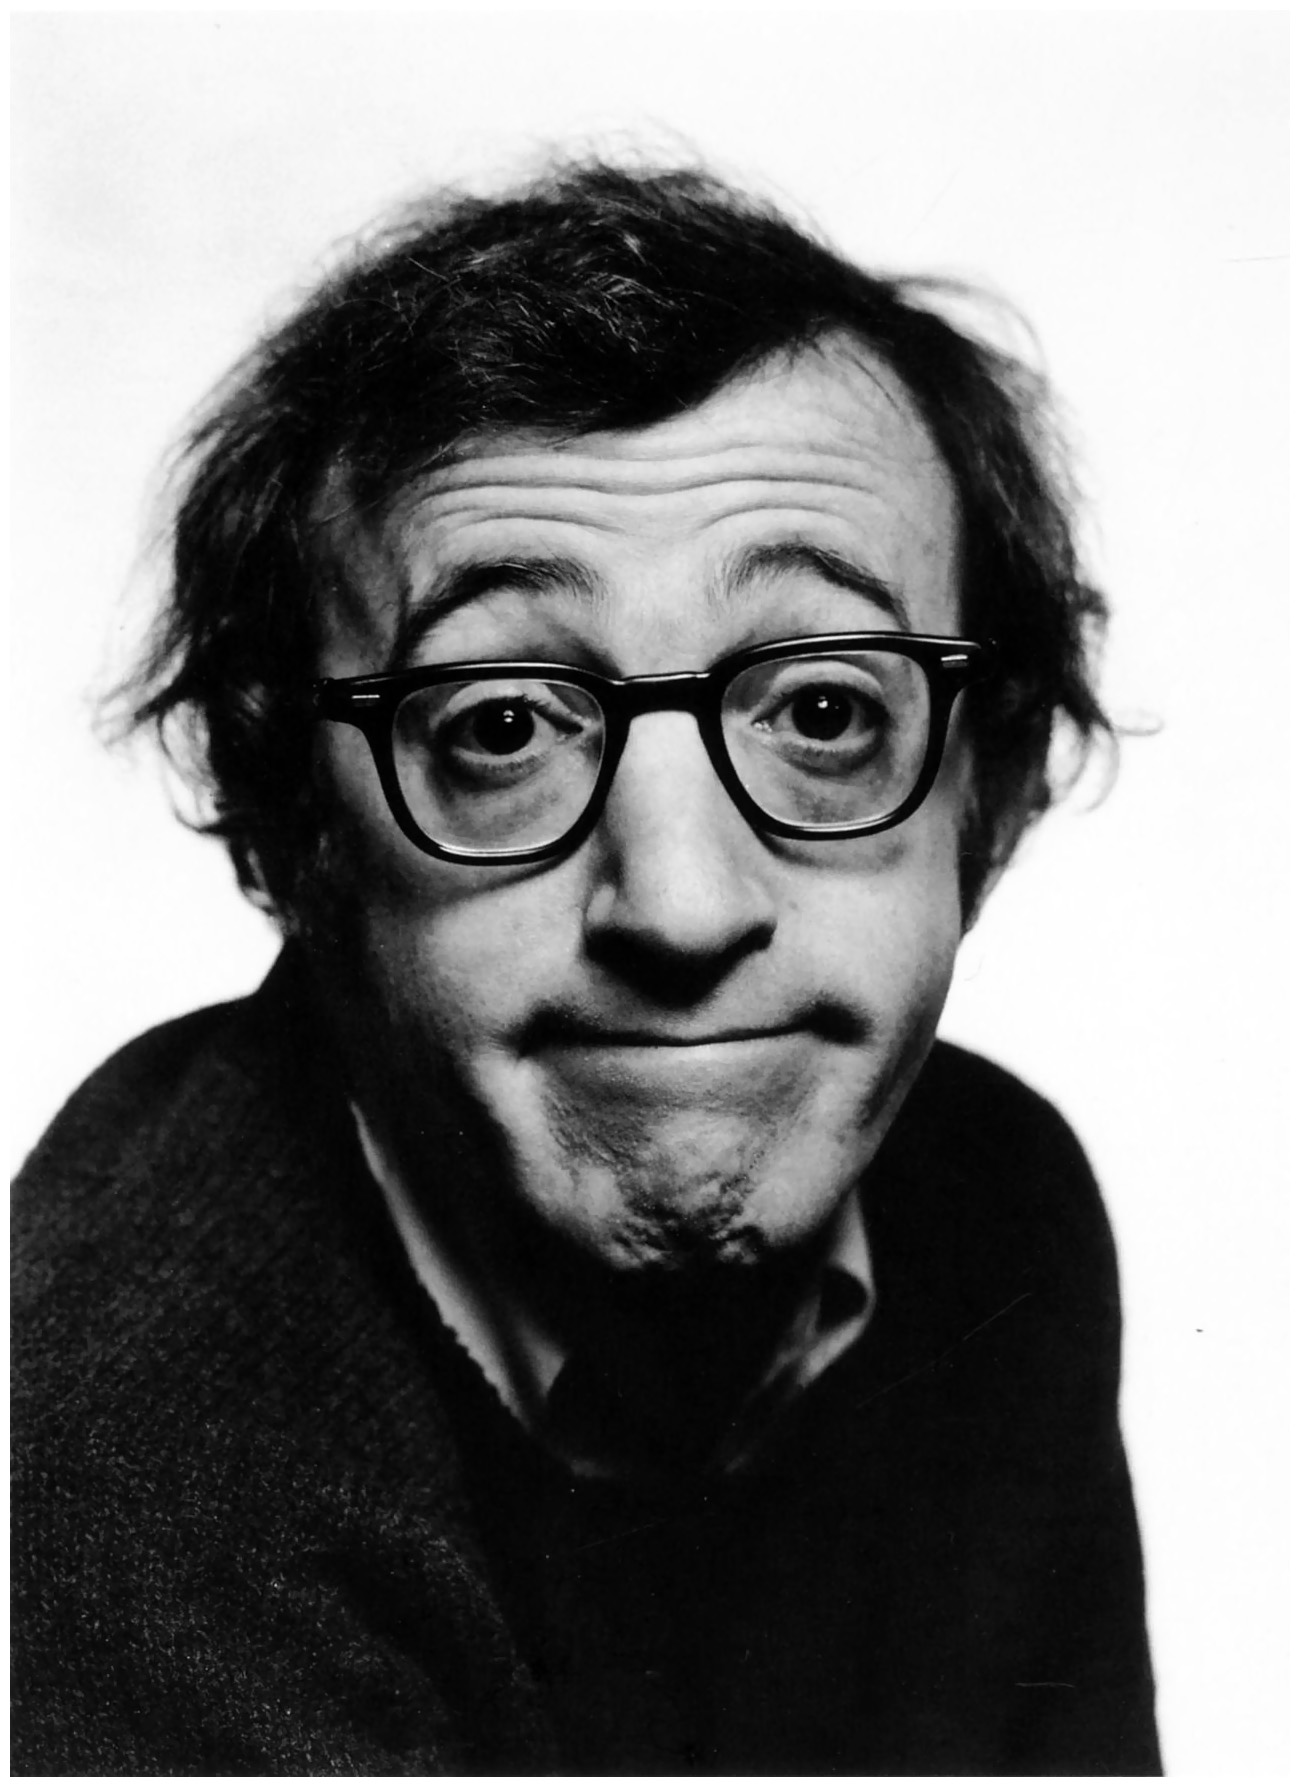 Philippe Halsman – The American actor and film director Woody Allen